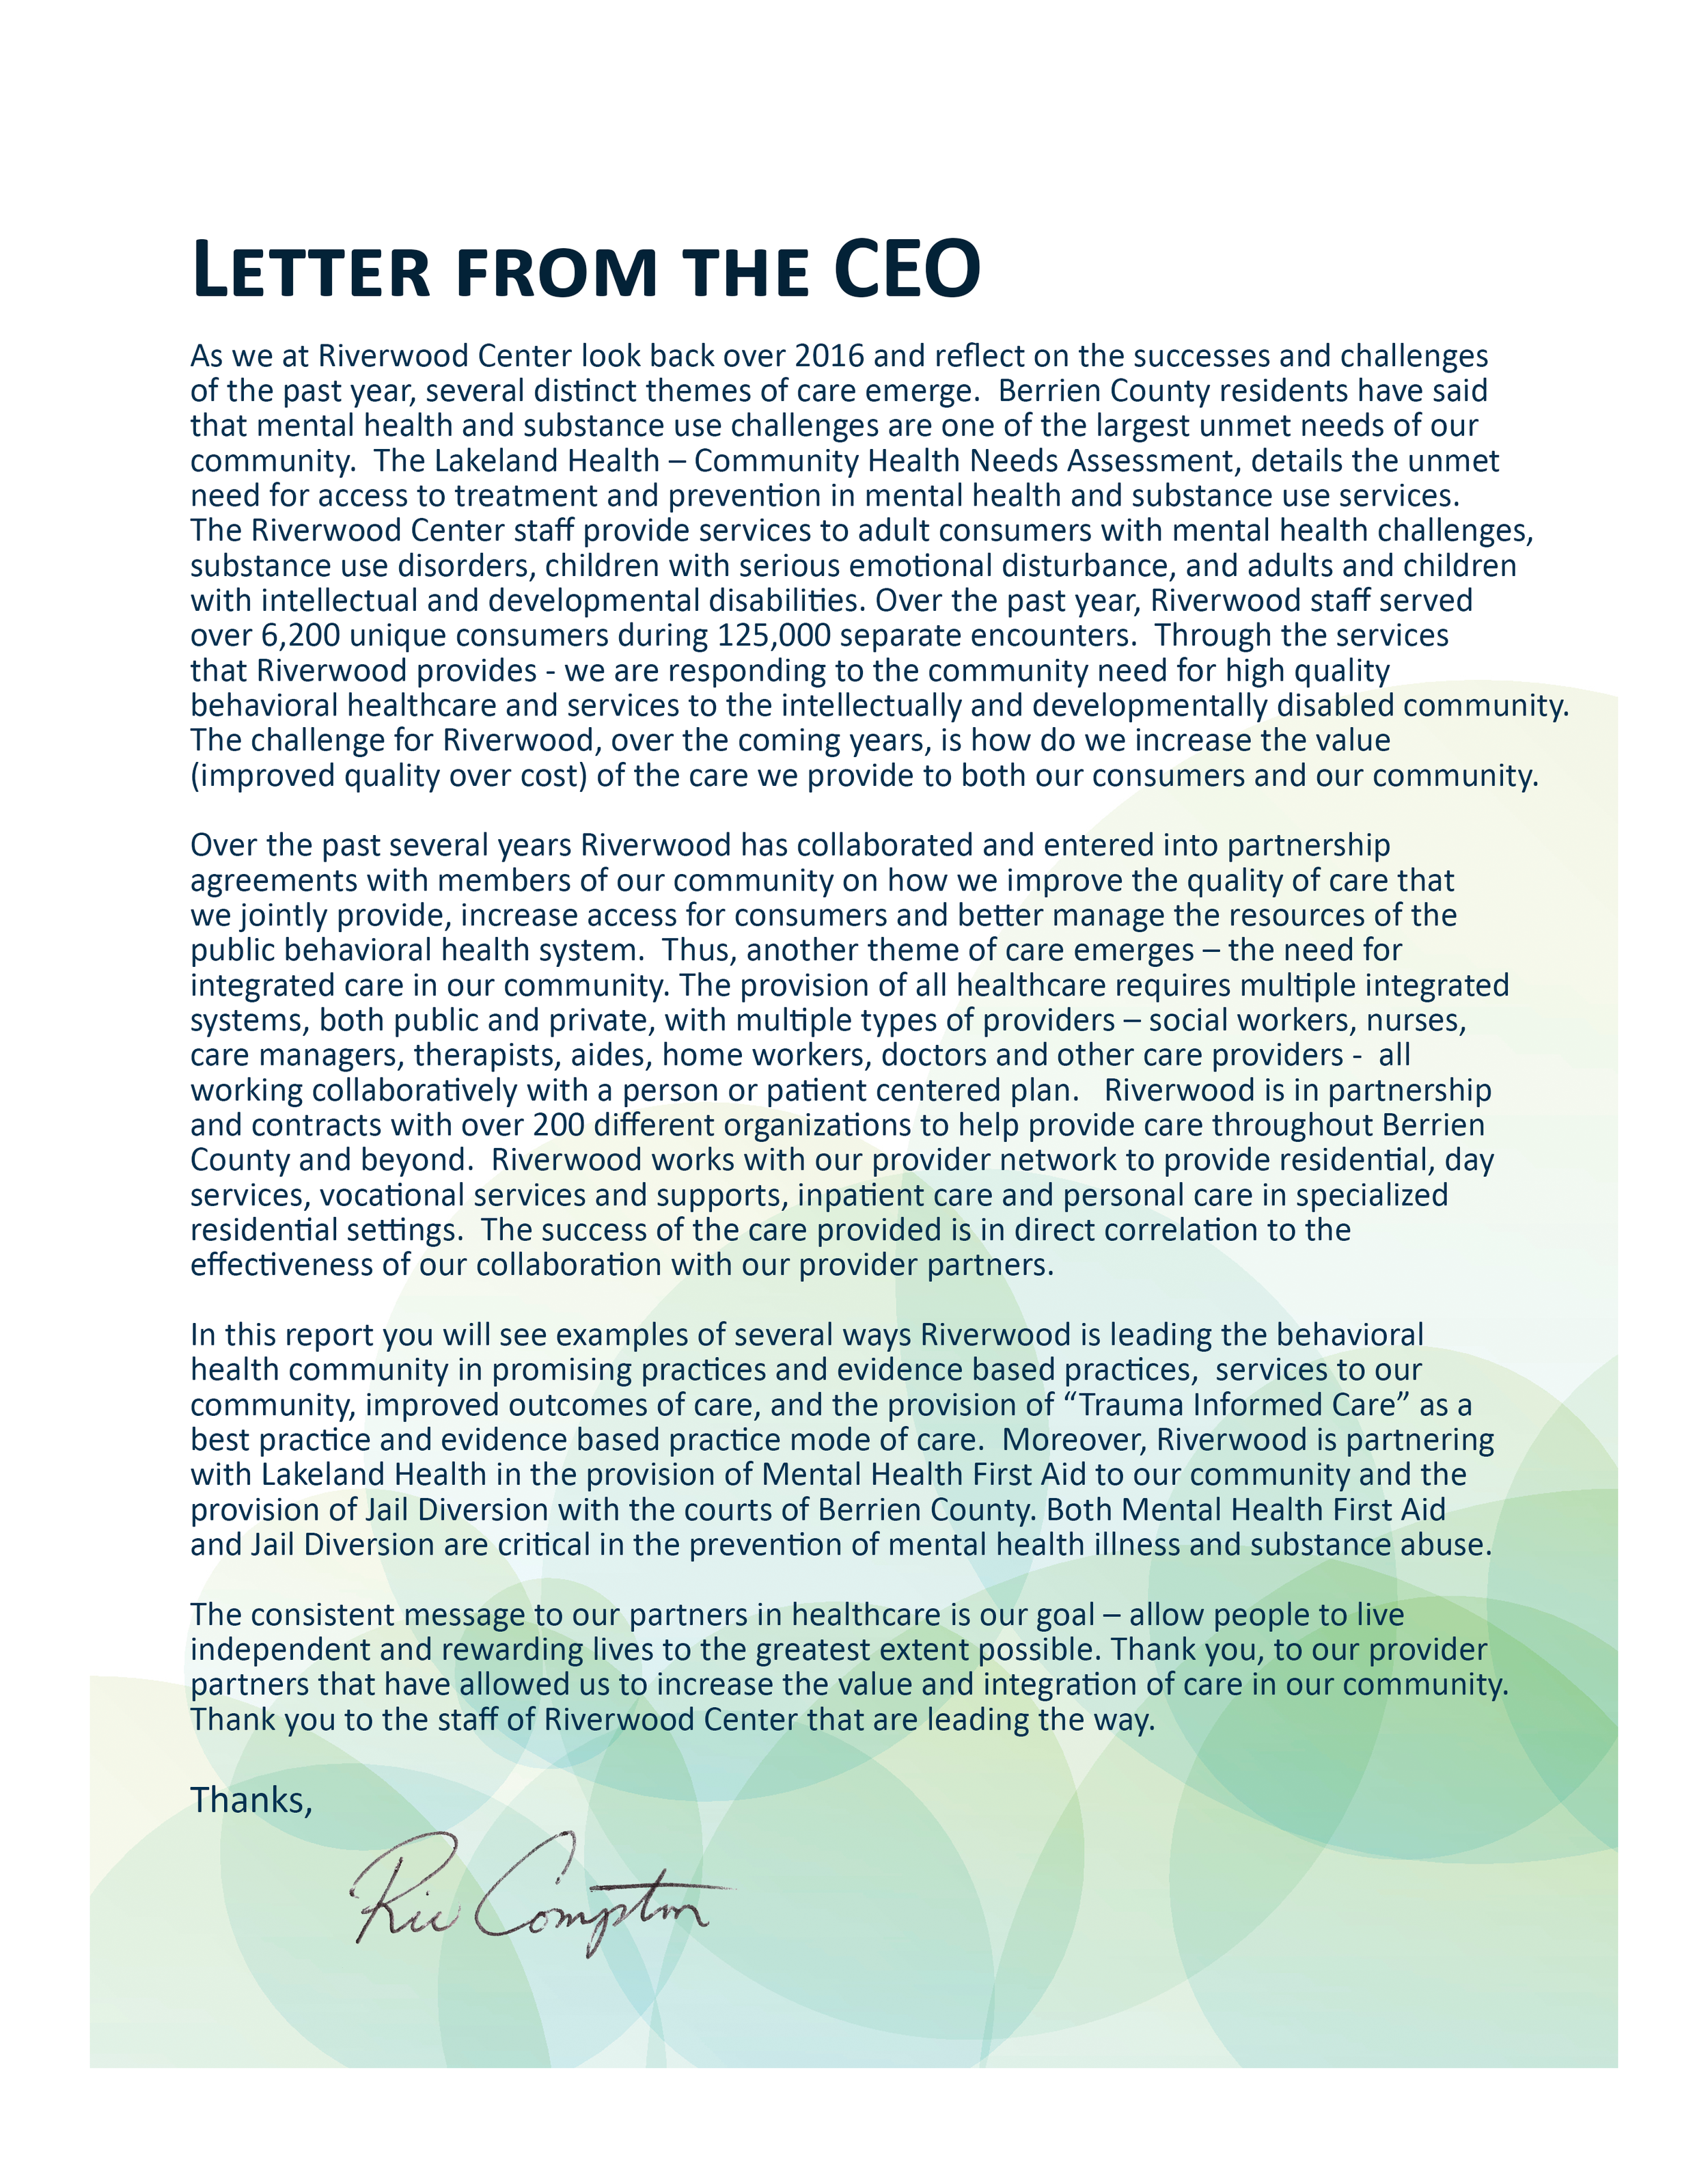 X   FINAL - ! - 2017 05 - CEO Letter.png